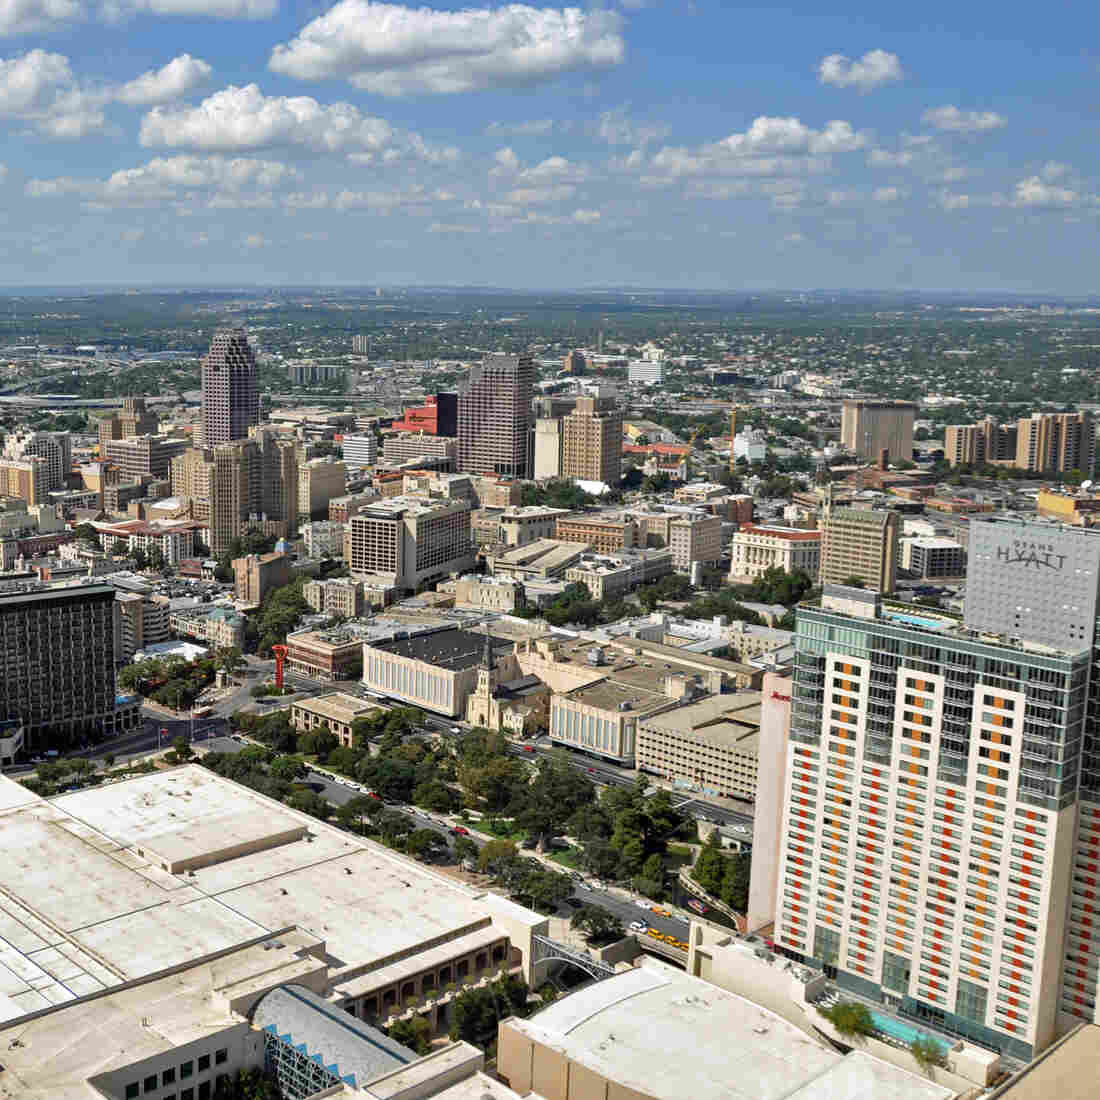 In San Antonio, a church-based group is helping to raise the minimum wage for city employees.